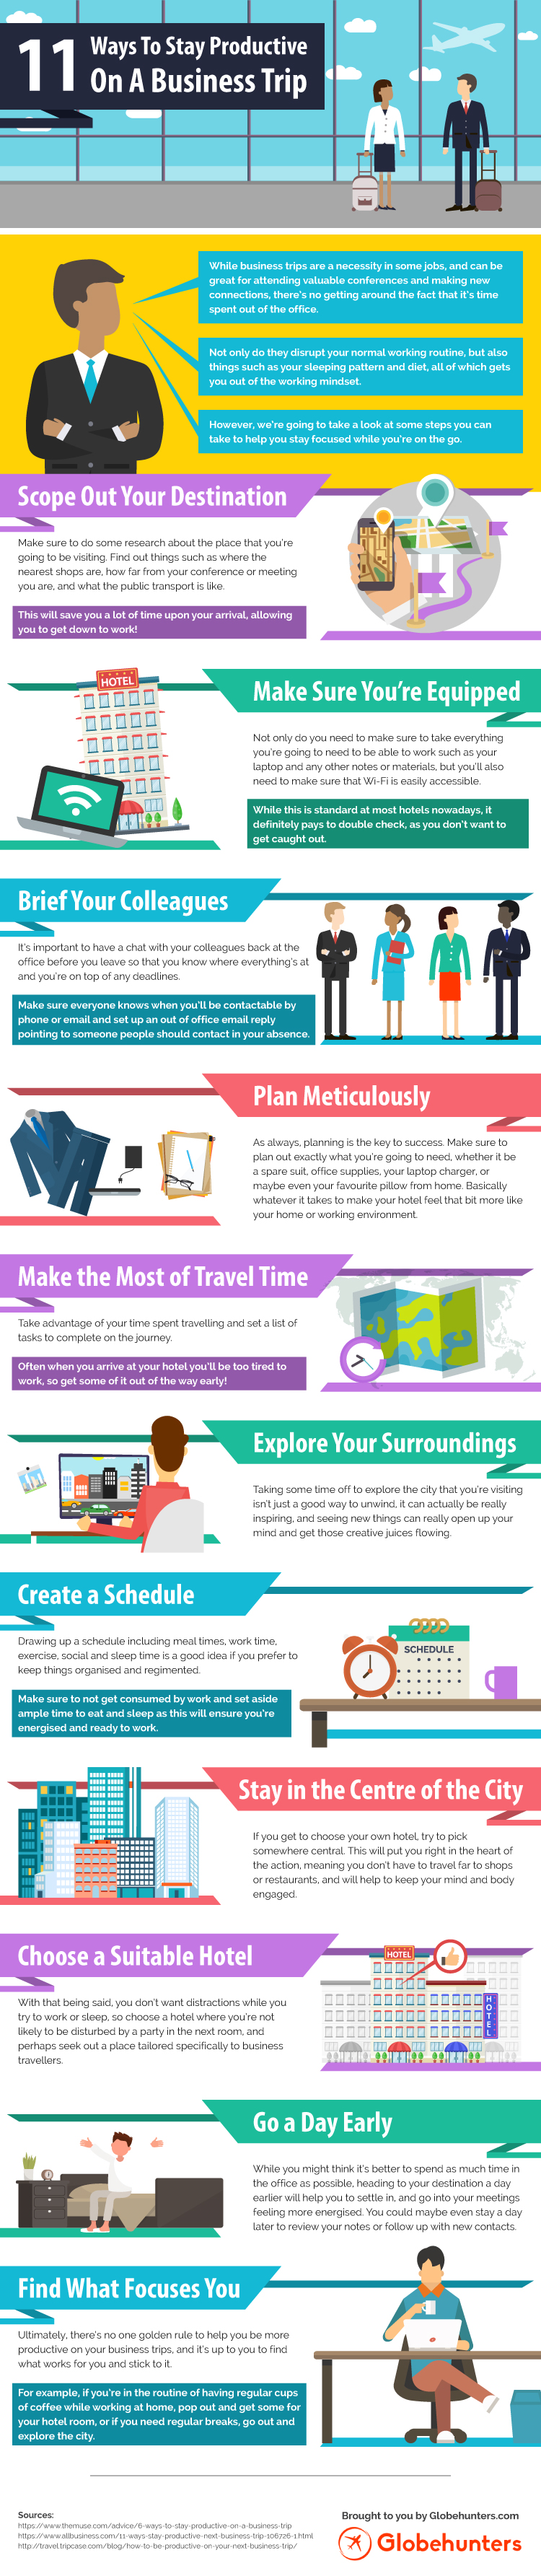 11 Ways To Stay Productive On A Business Trip [Infographic]